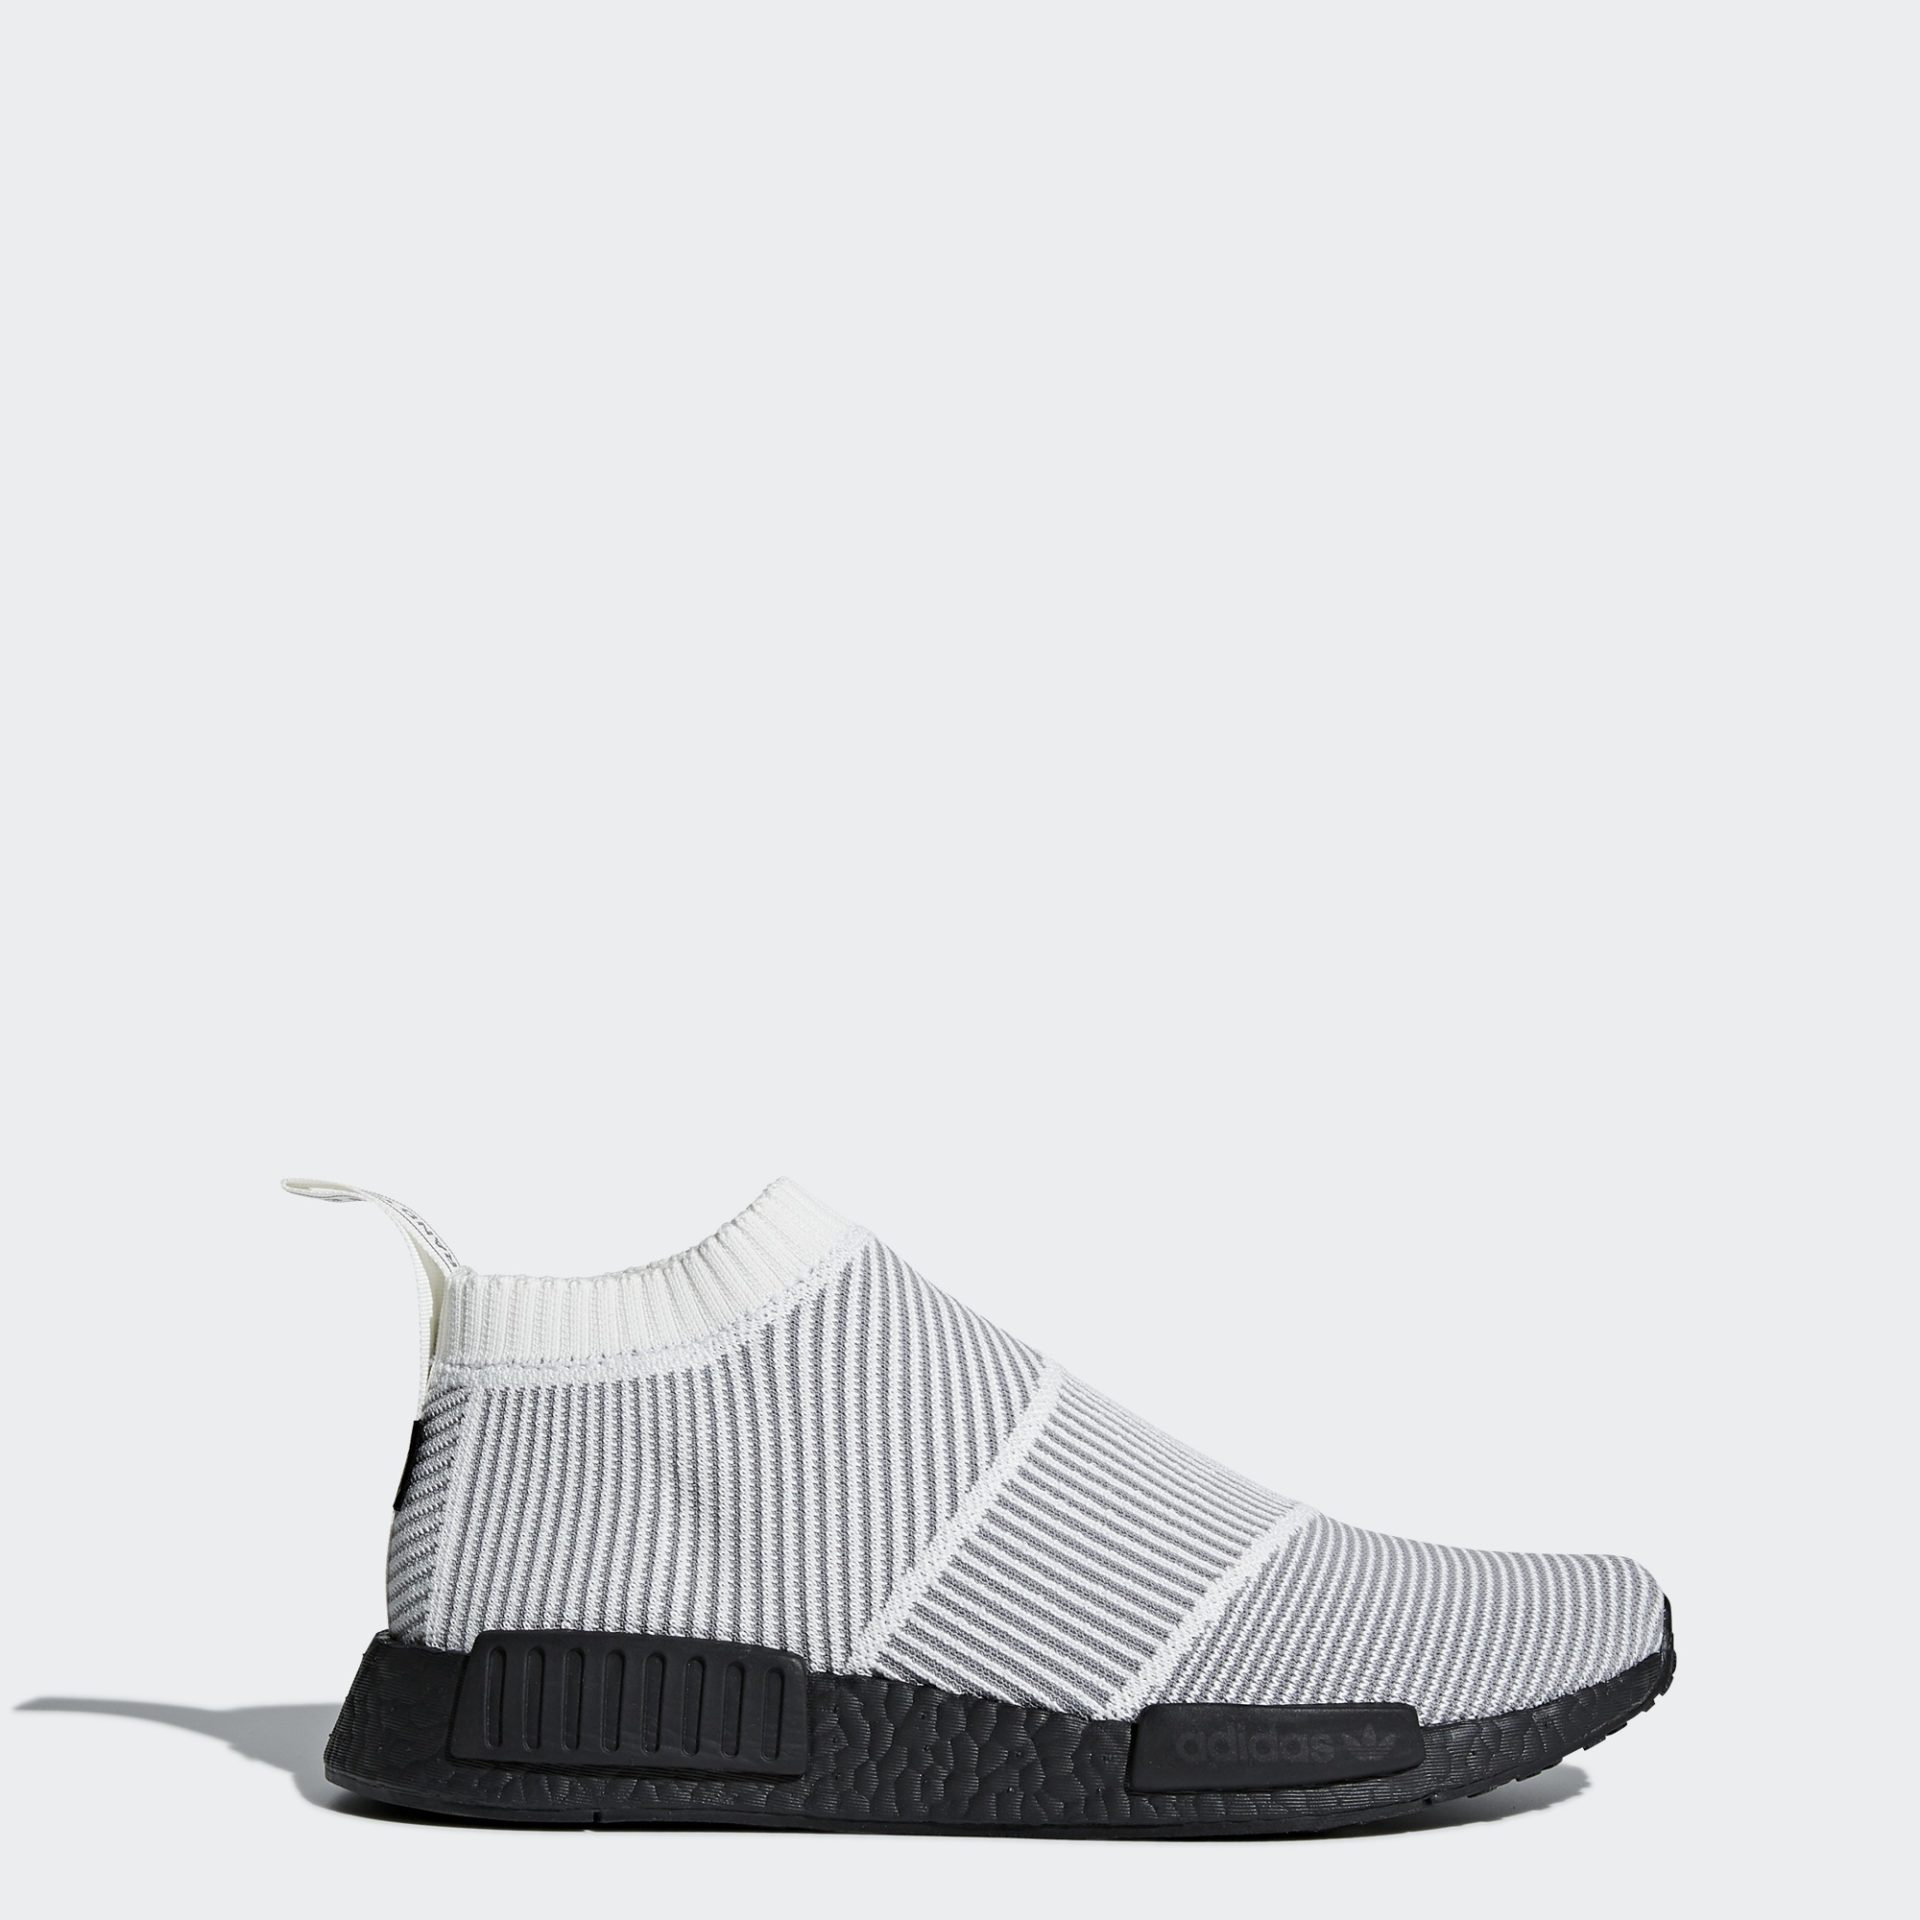 outlet store 3d803 f4dc7 adidas NMD City Sock Gore-Tex - Sneakers.fr